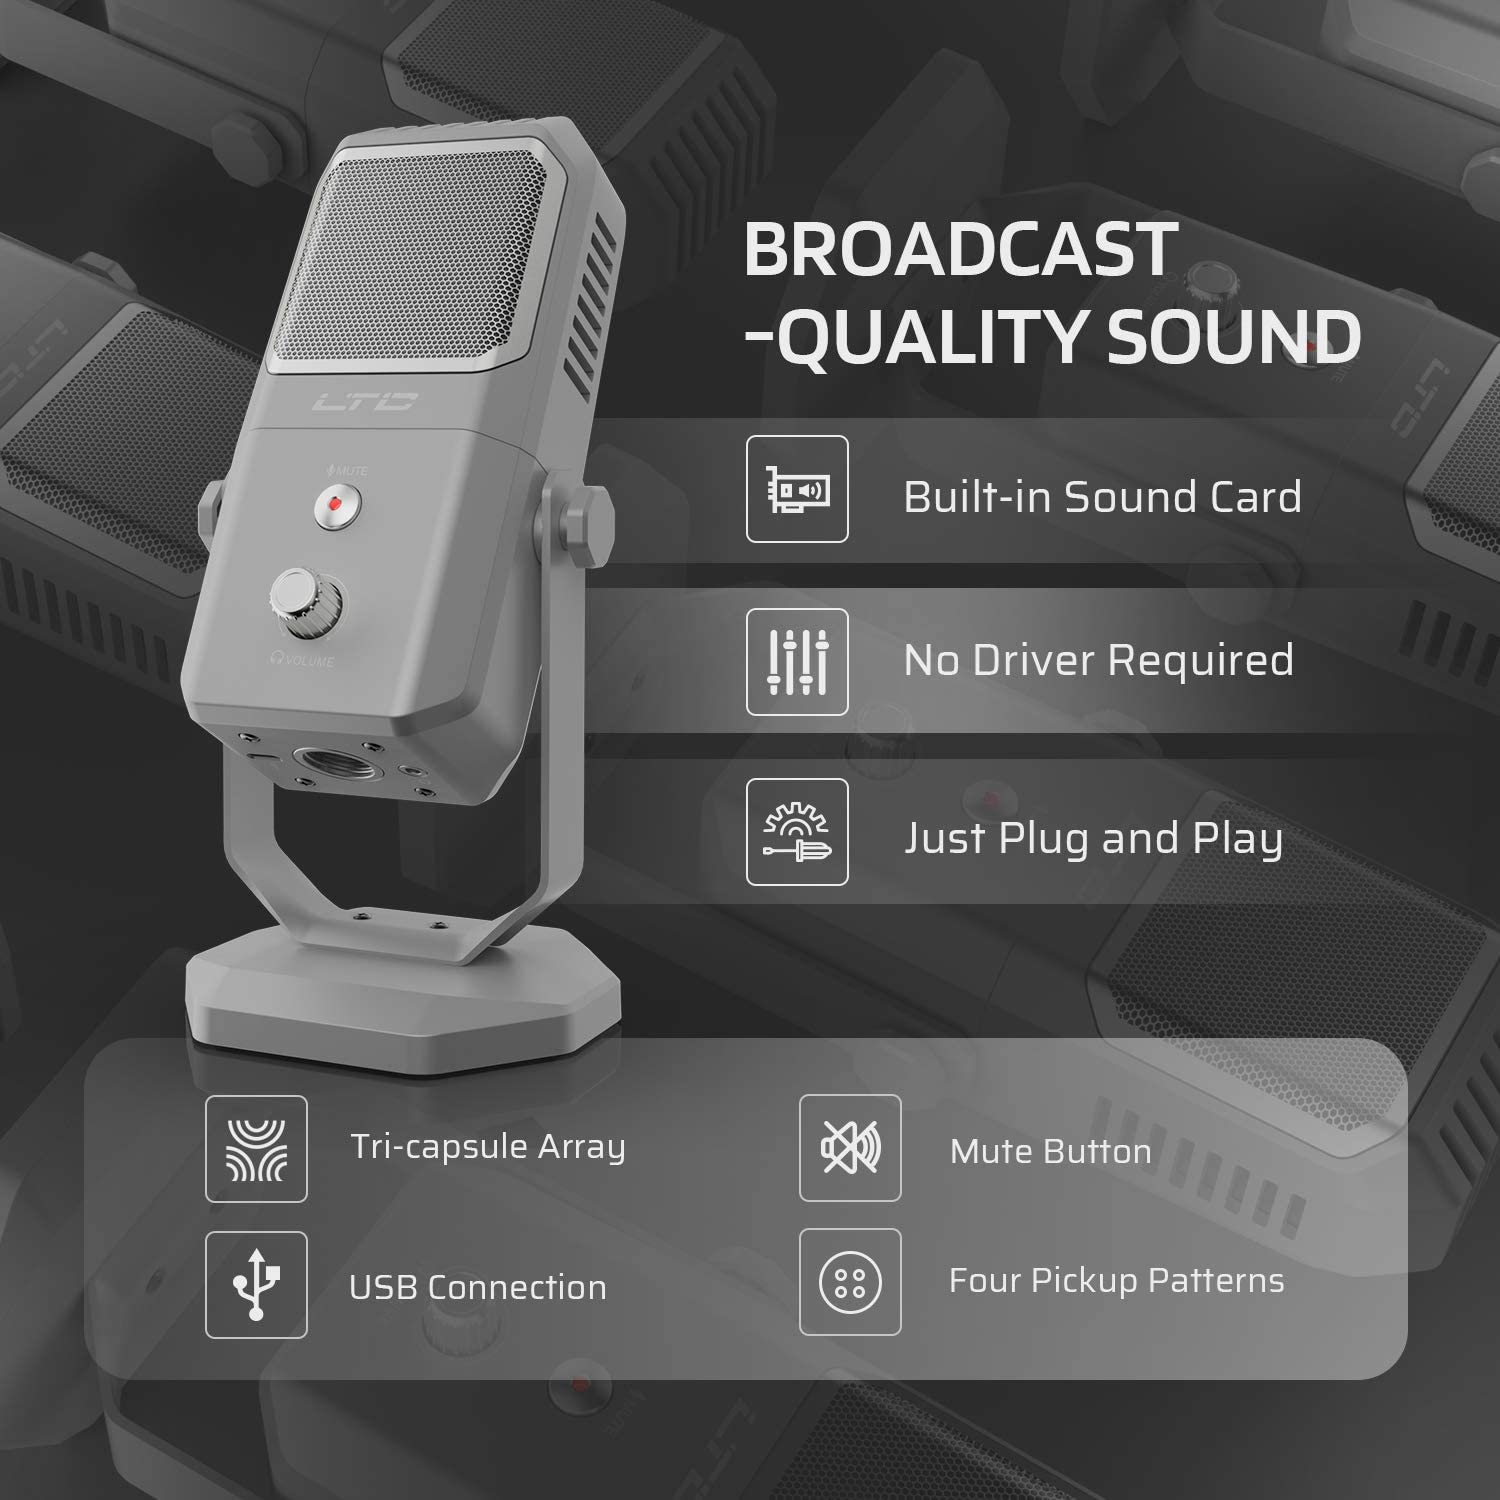 Professional Grade Mic for Studio Recording Vocals Streaming Broadcast and YouTube Videos LTC Encore MPE-01 Metal Stand Condenser Microphone USB Microphone Silver 4 Pickup Patterns